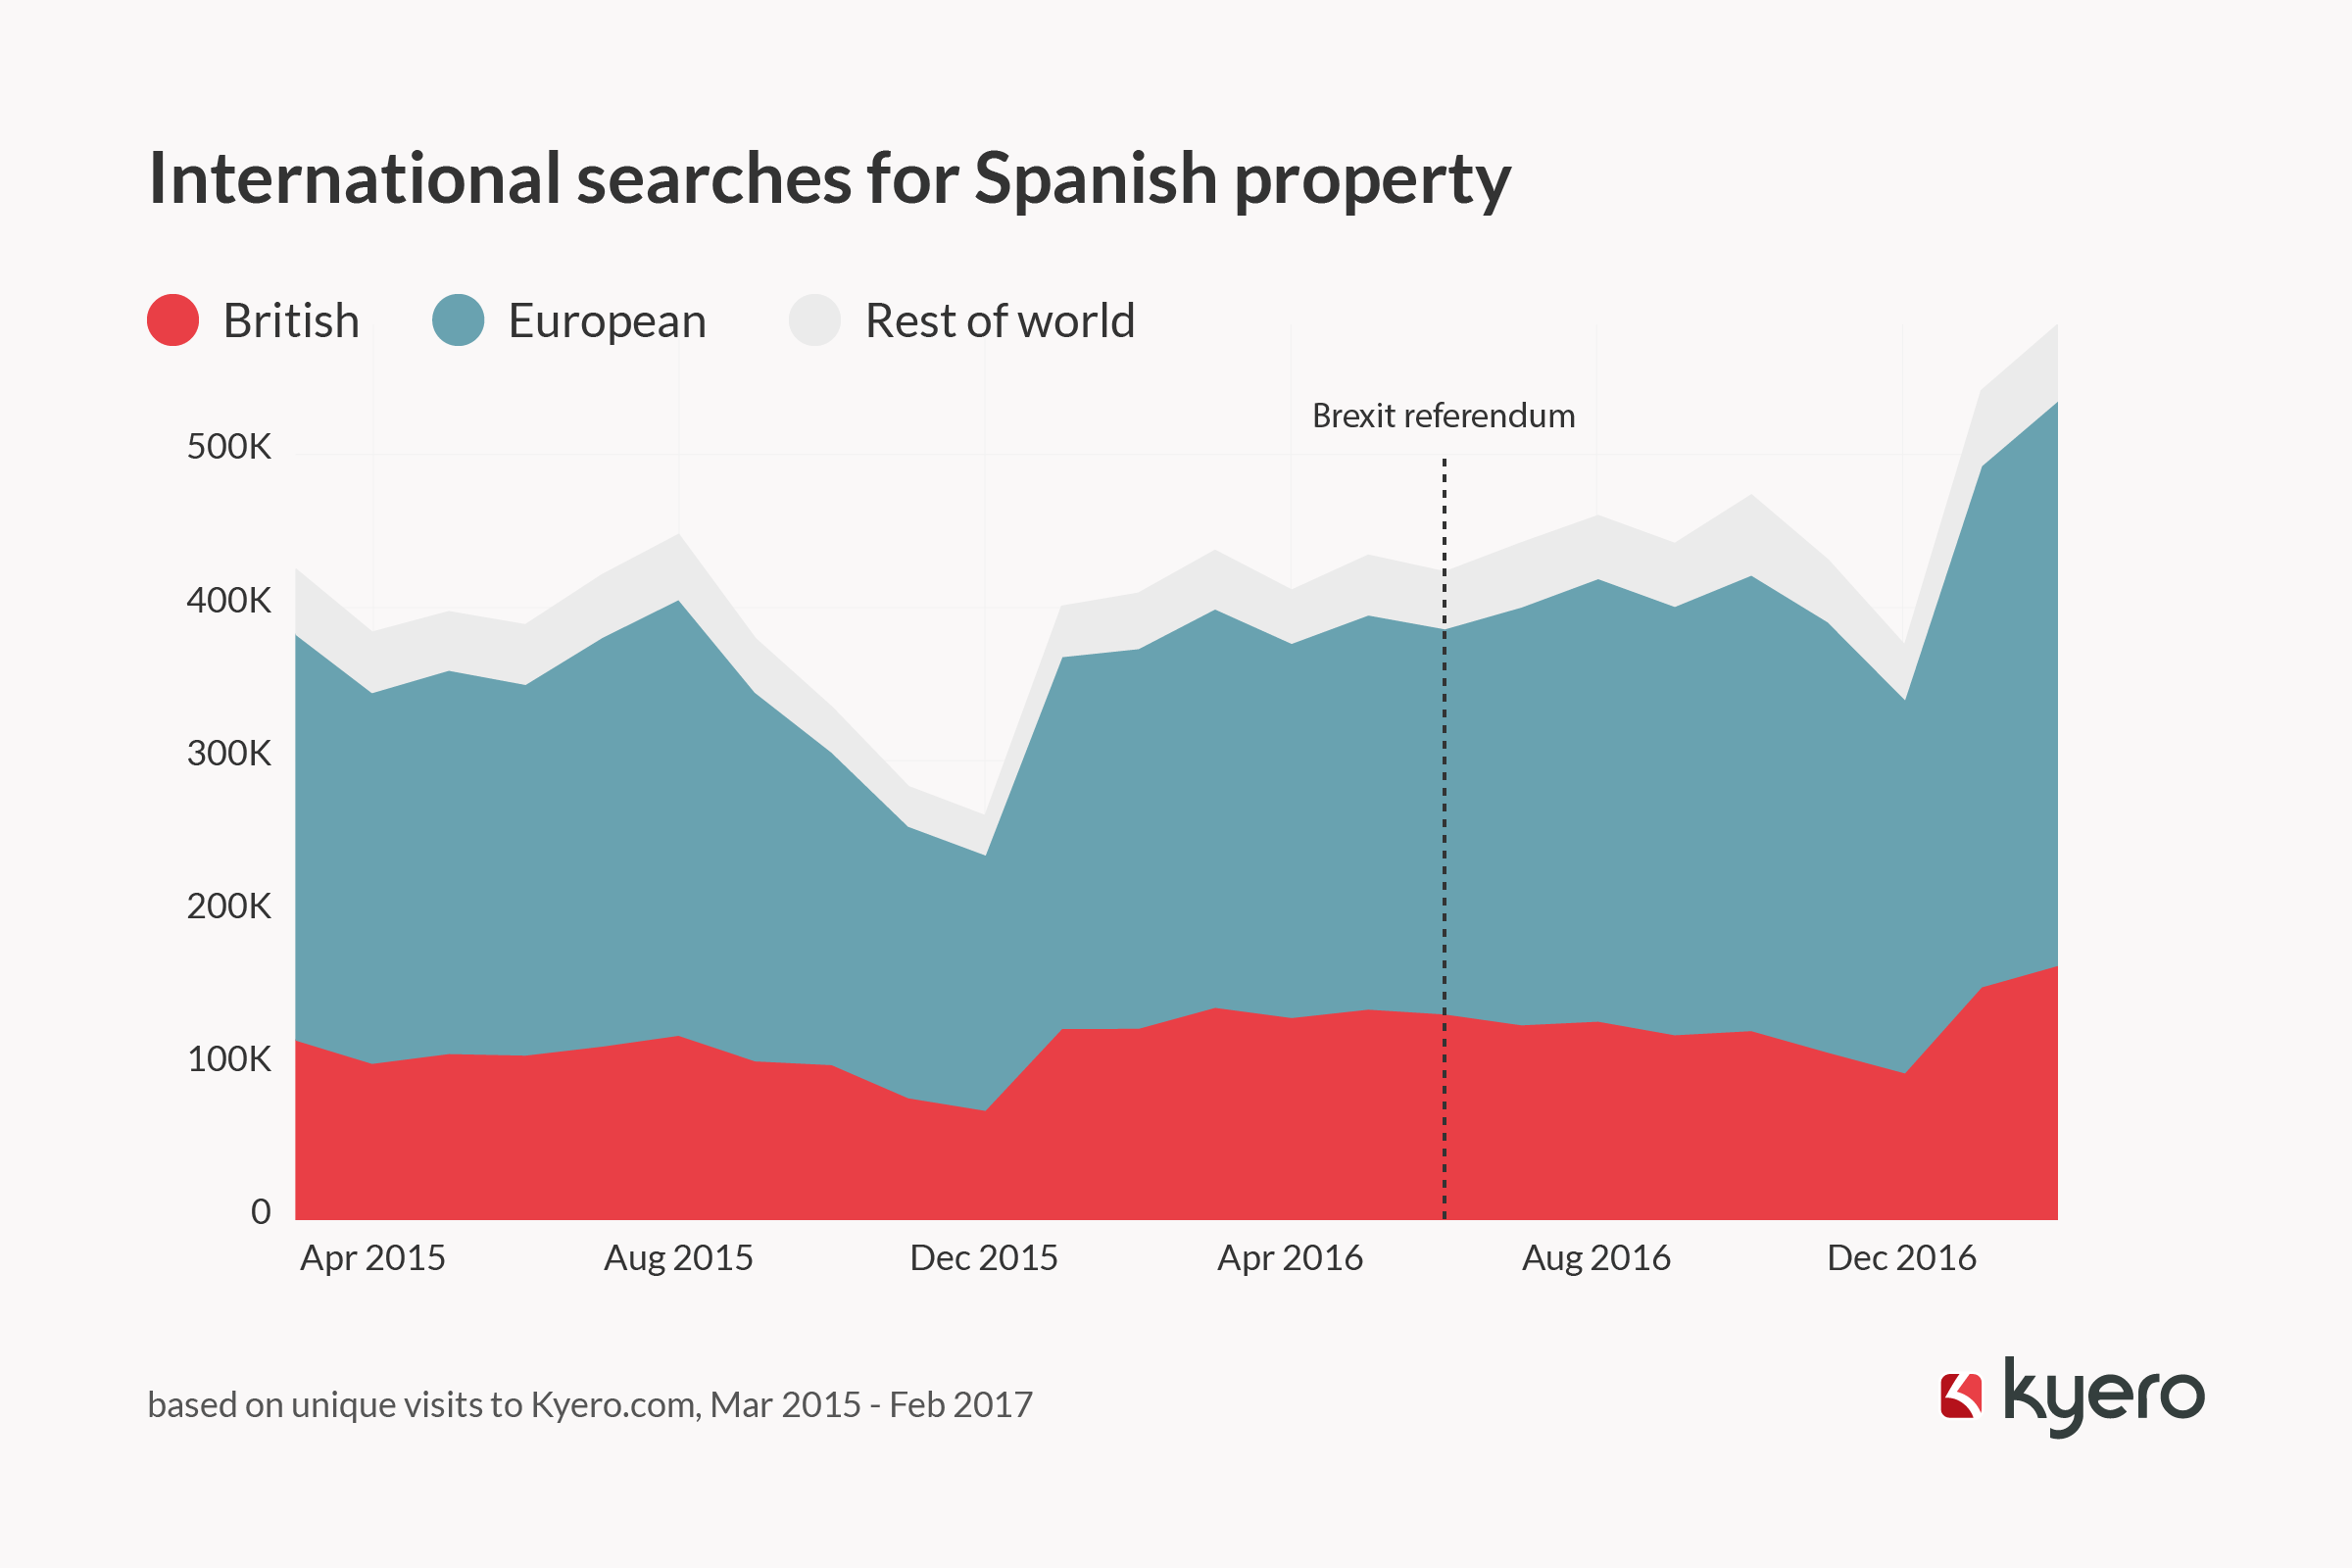 International searches for Spanish property